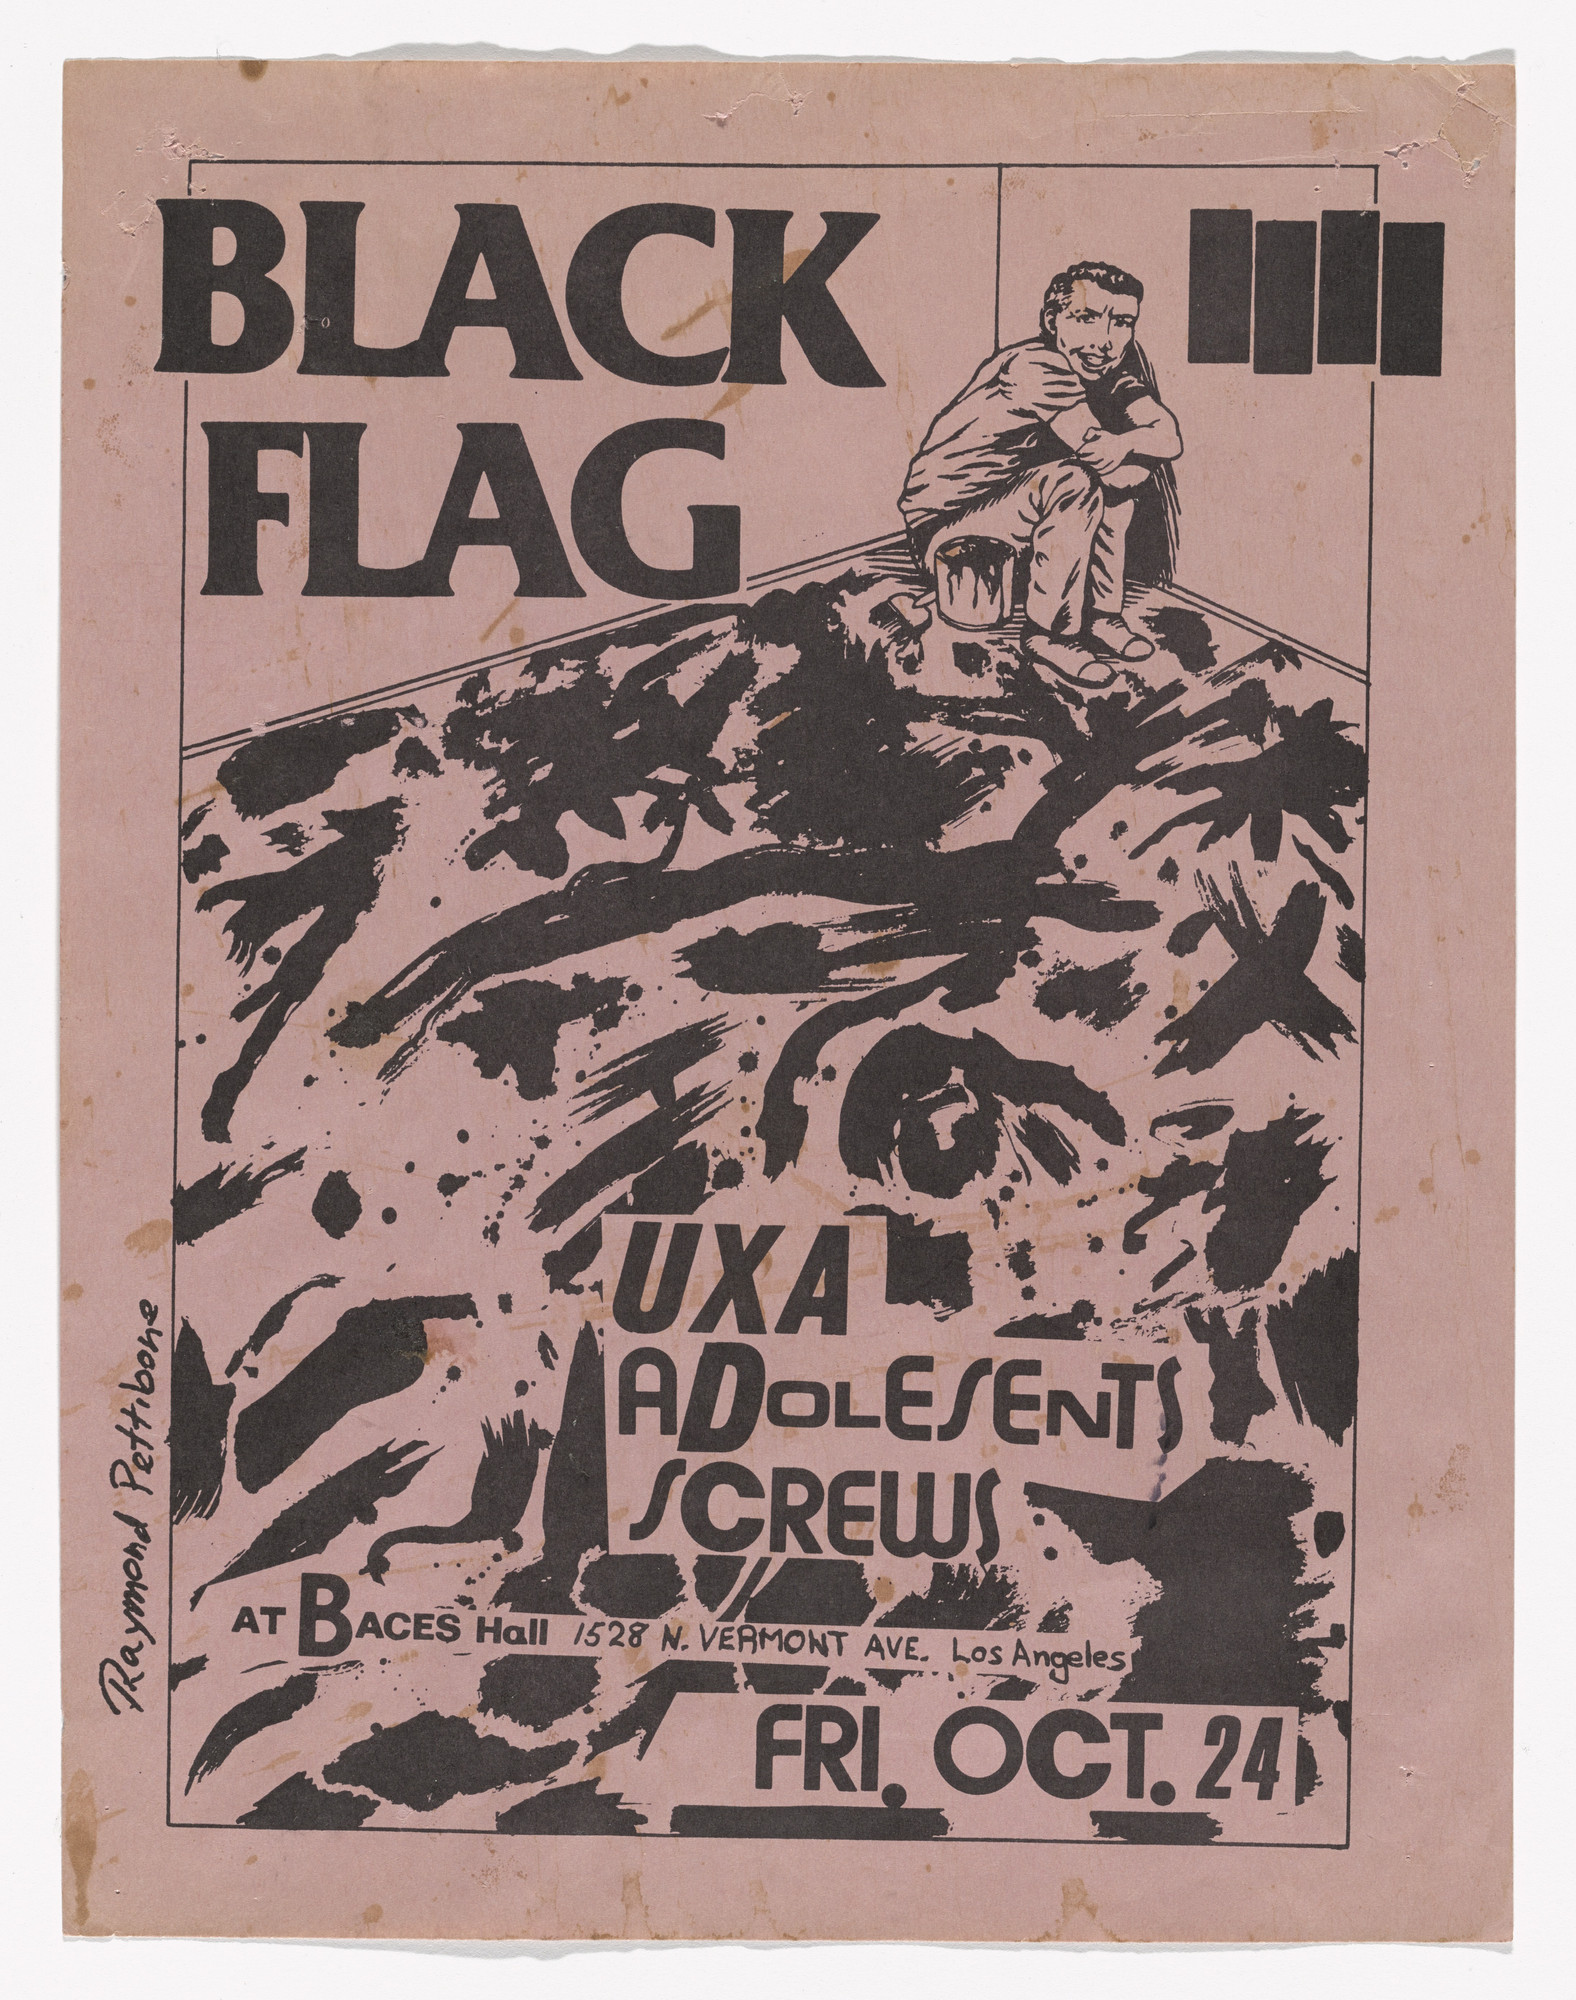 Raymond Pettibon. Black Flag at Baces Hall. October 24, 1980